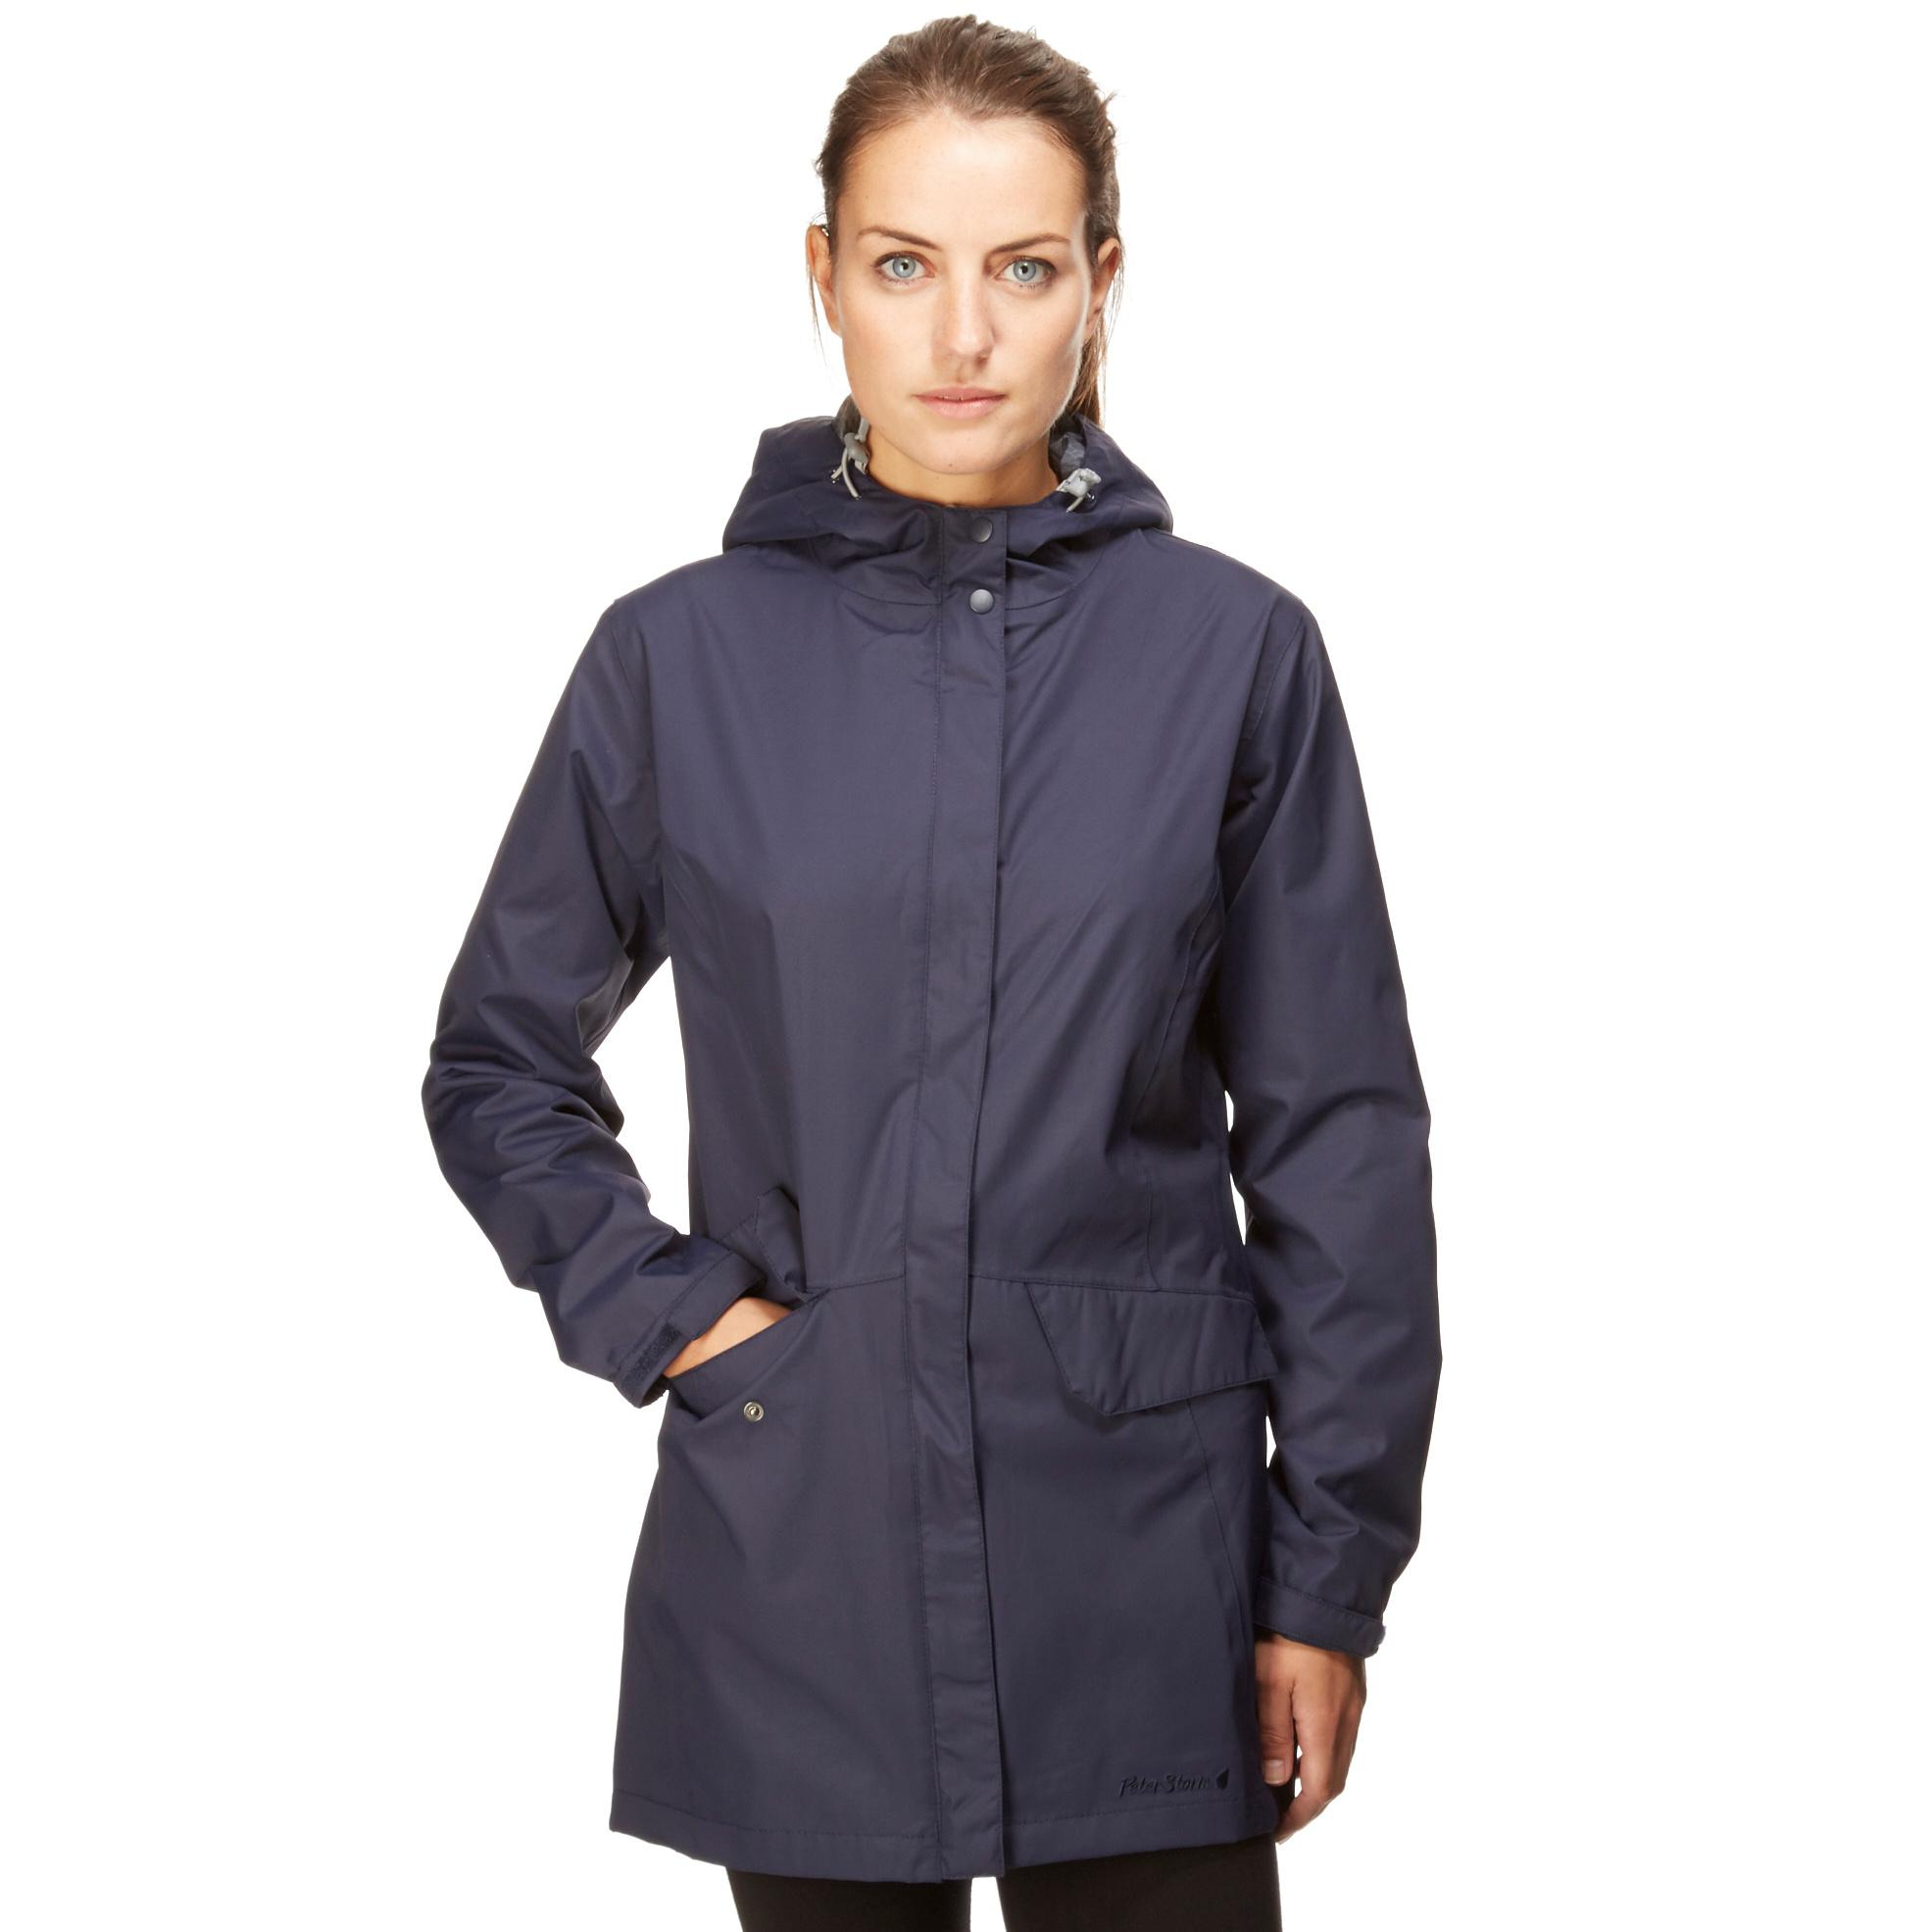 Peter Storm Women's Cyclone Waterproof Jacket